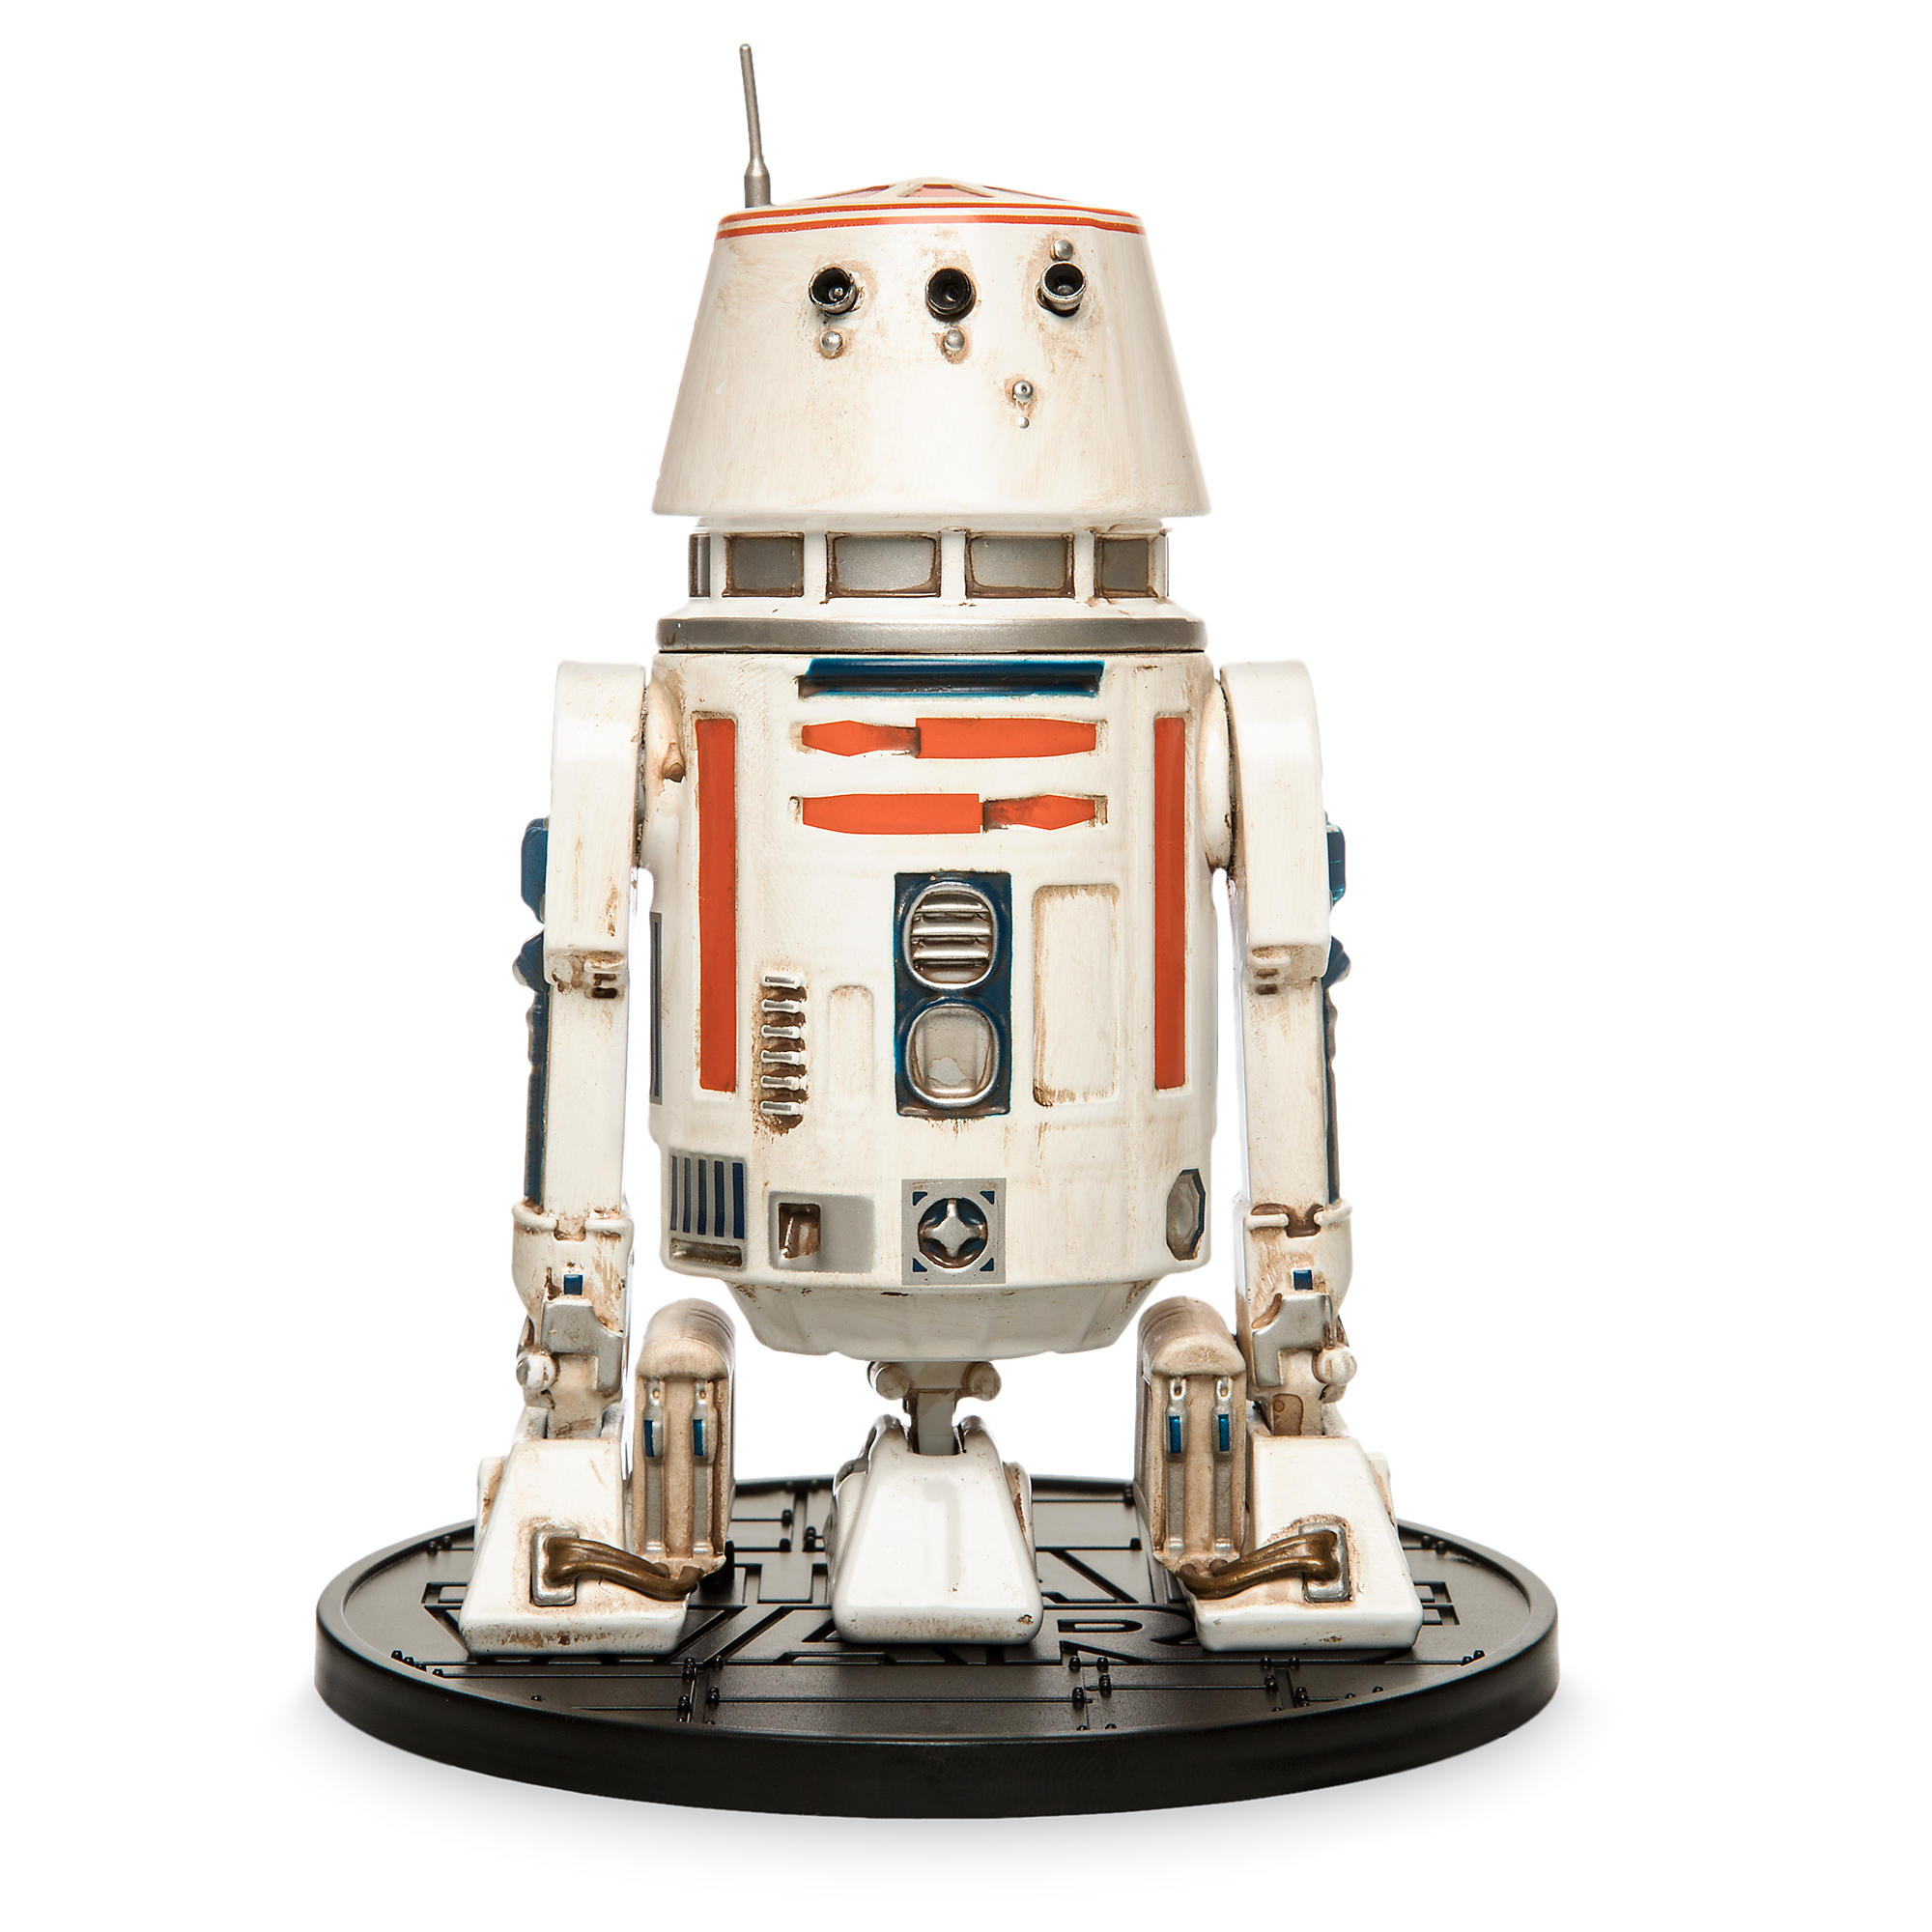 May The 4th Be With You Disneyland 2019: Four New Droid Star Wars Elite Series Die-Cast Action